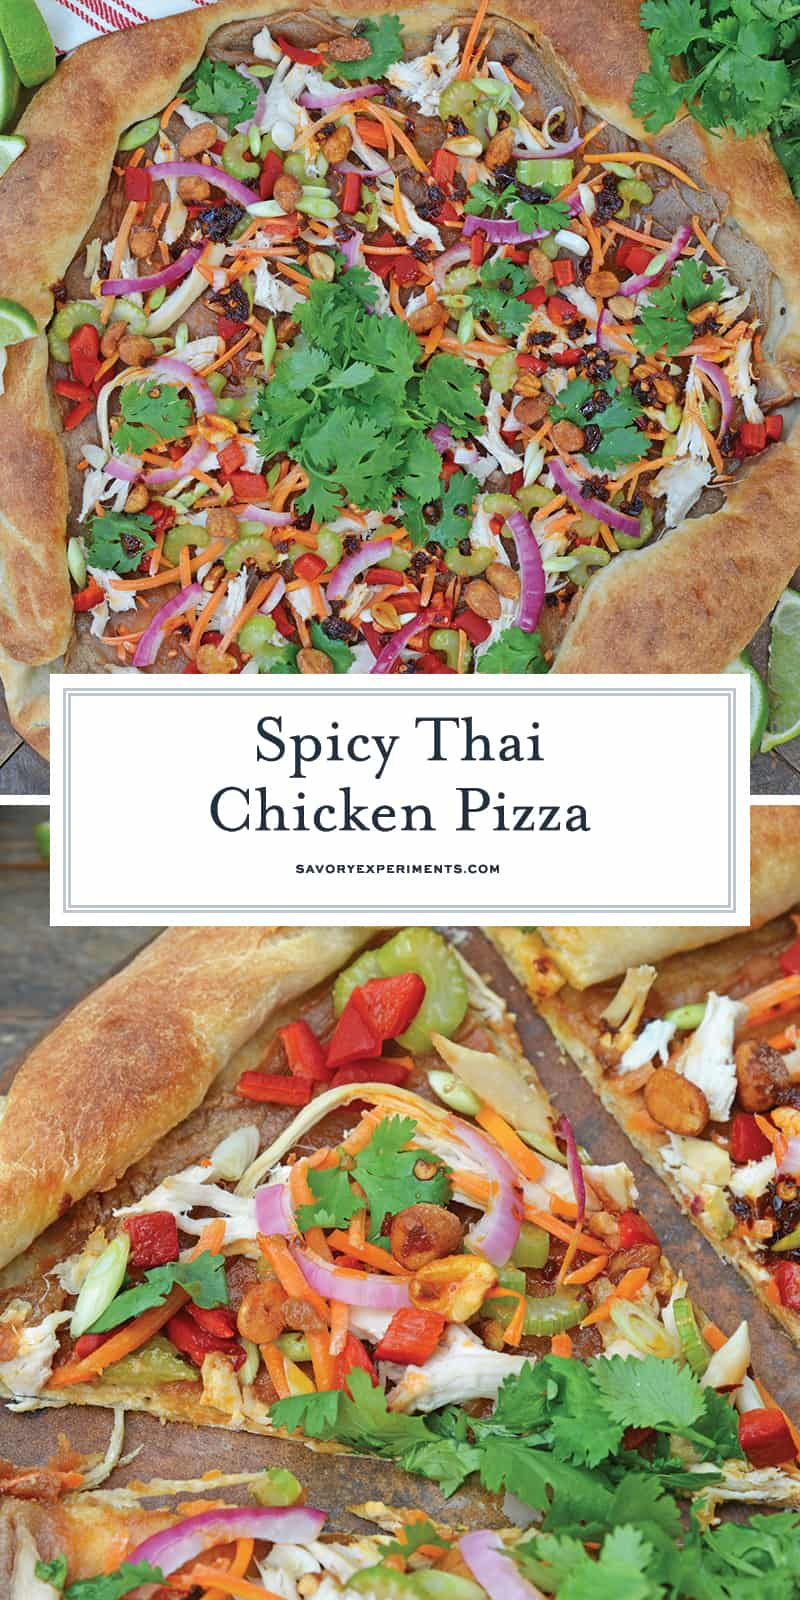 Spicy Thai Chicken Pizza uses a rich peanut satay sauce with shredded chicken, colorful vegetables and topped with sweet honey roasted peanuts and spicy chili oil. #thaichicken #homemadepizza www.savoryexperiments.com